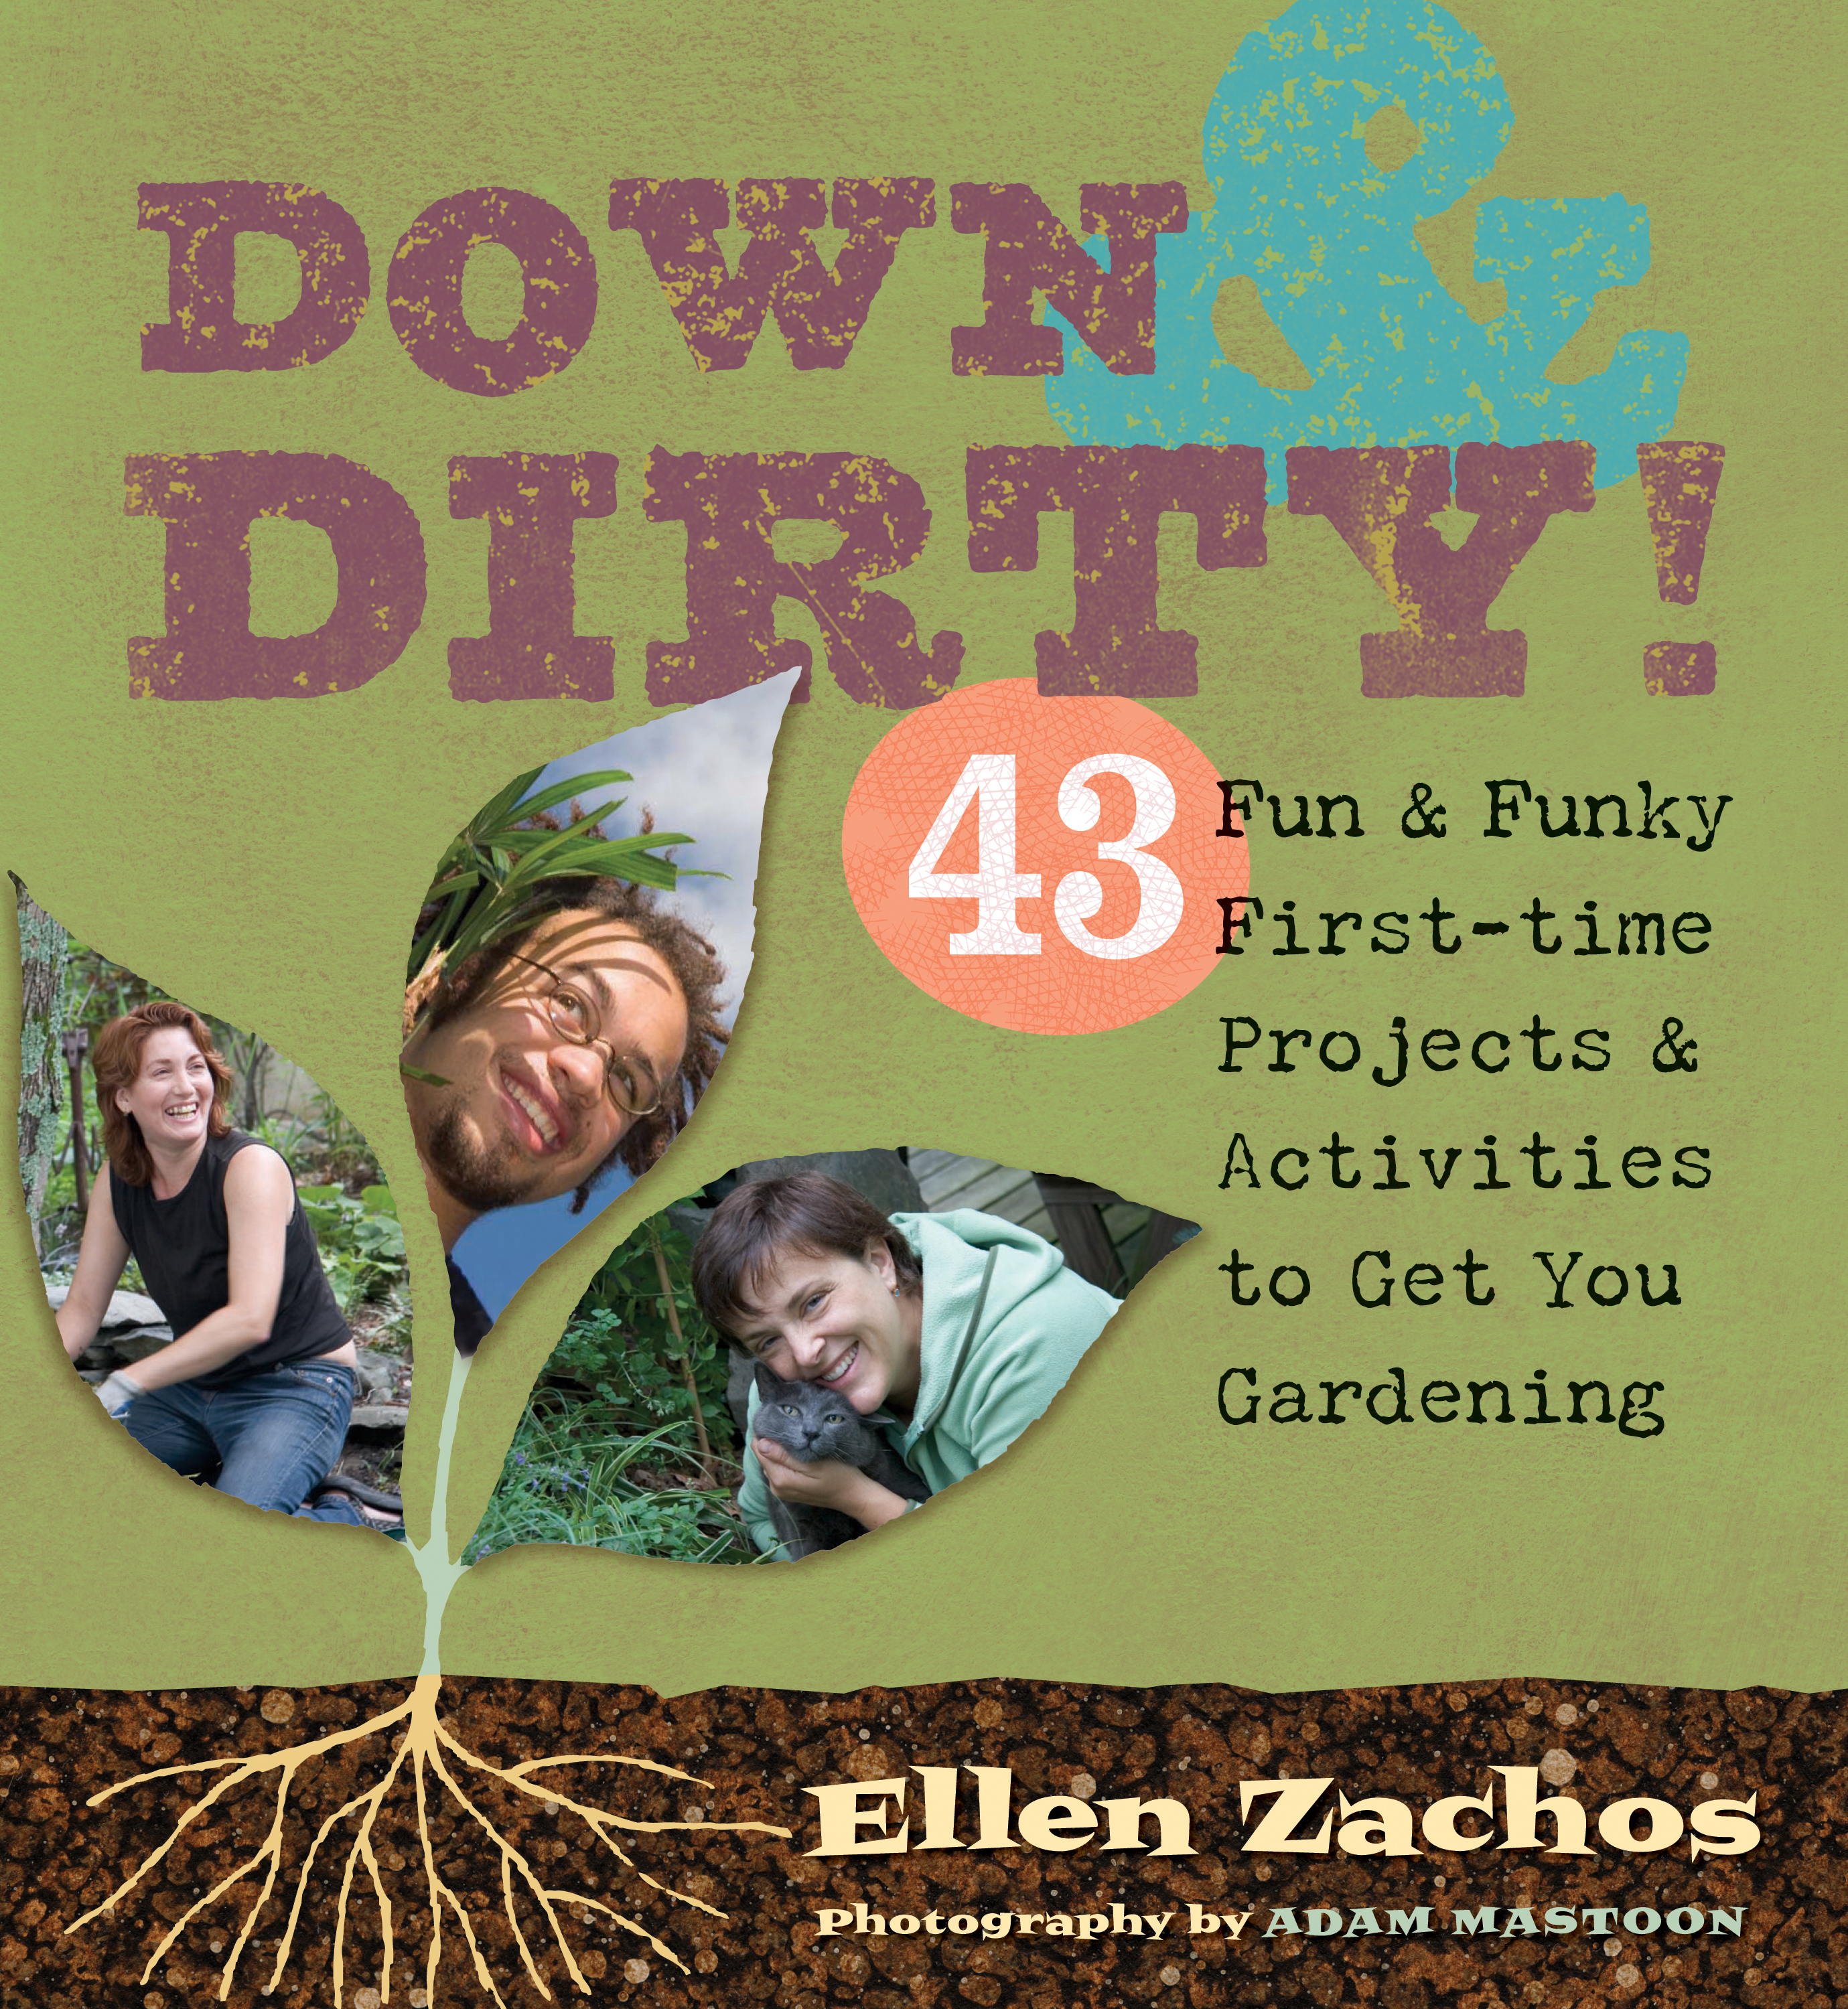 Down & Dirty 43 Fun & Funky First-time Projects & Activities to Get You Gardening - Ellen Zachos